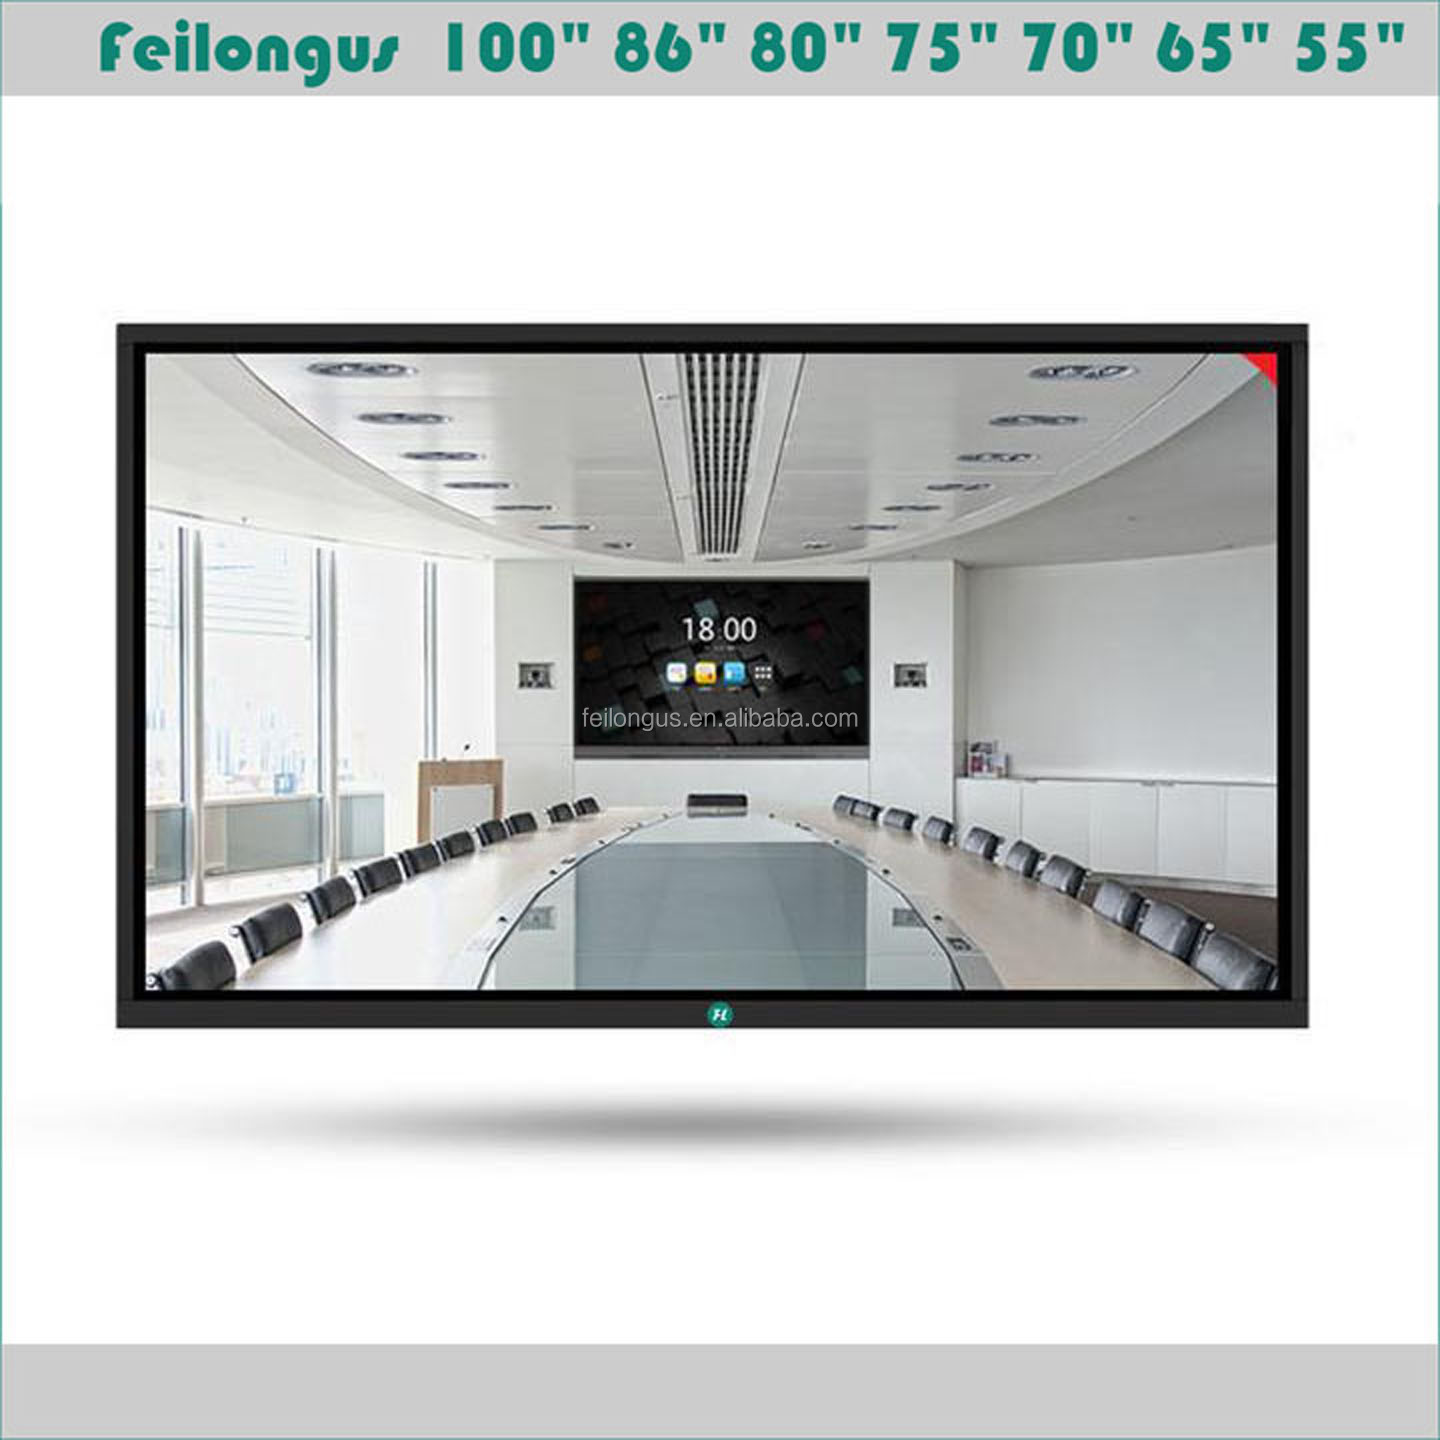 86 Inch Ultra HD 4 K LED Interactieve Touch Screen Monitor LED Smart Board TV Met PC Alles In Een